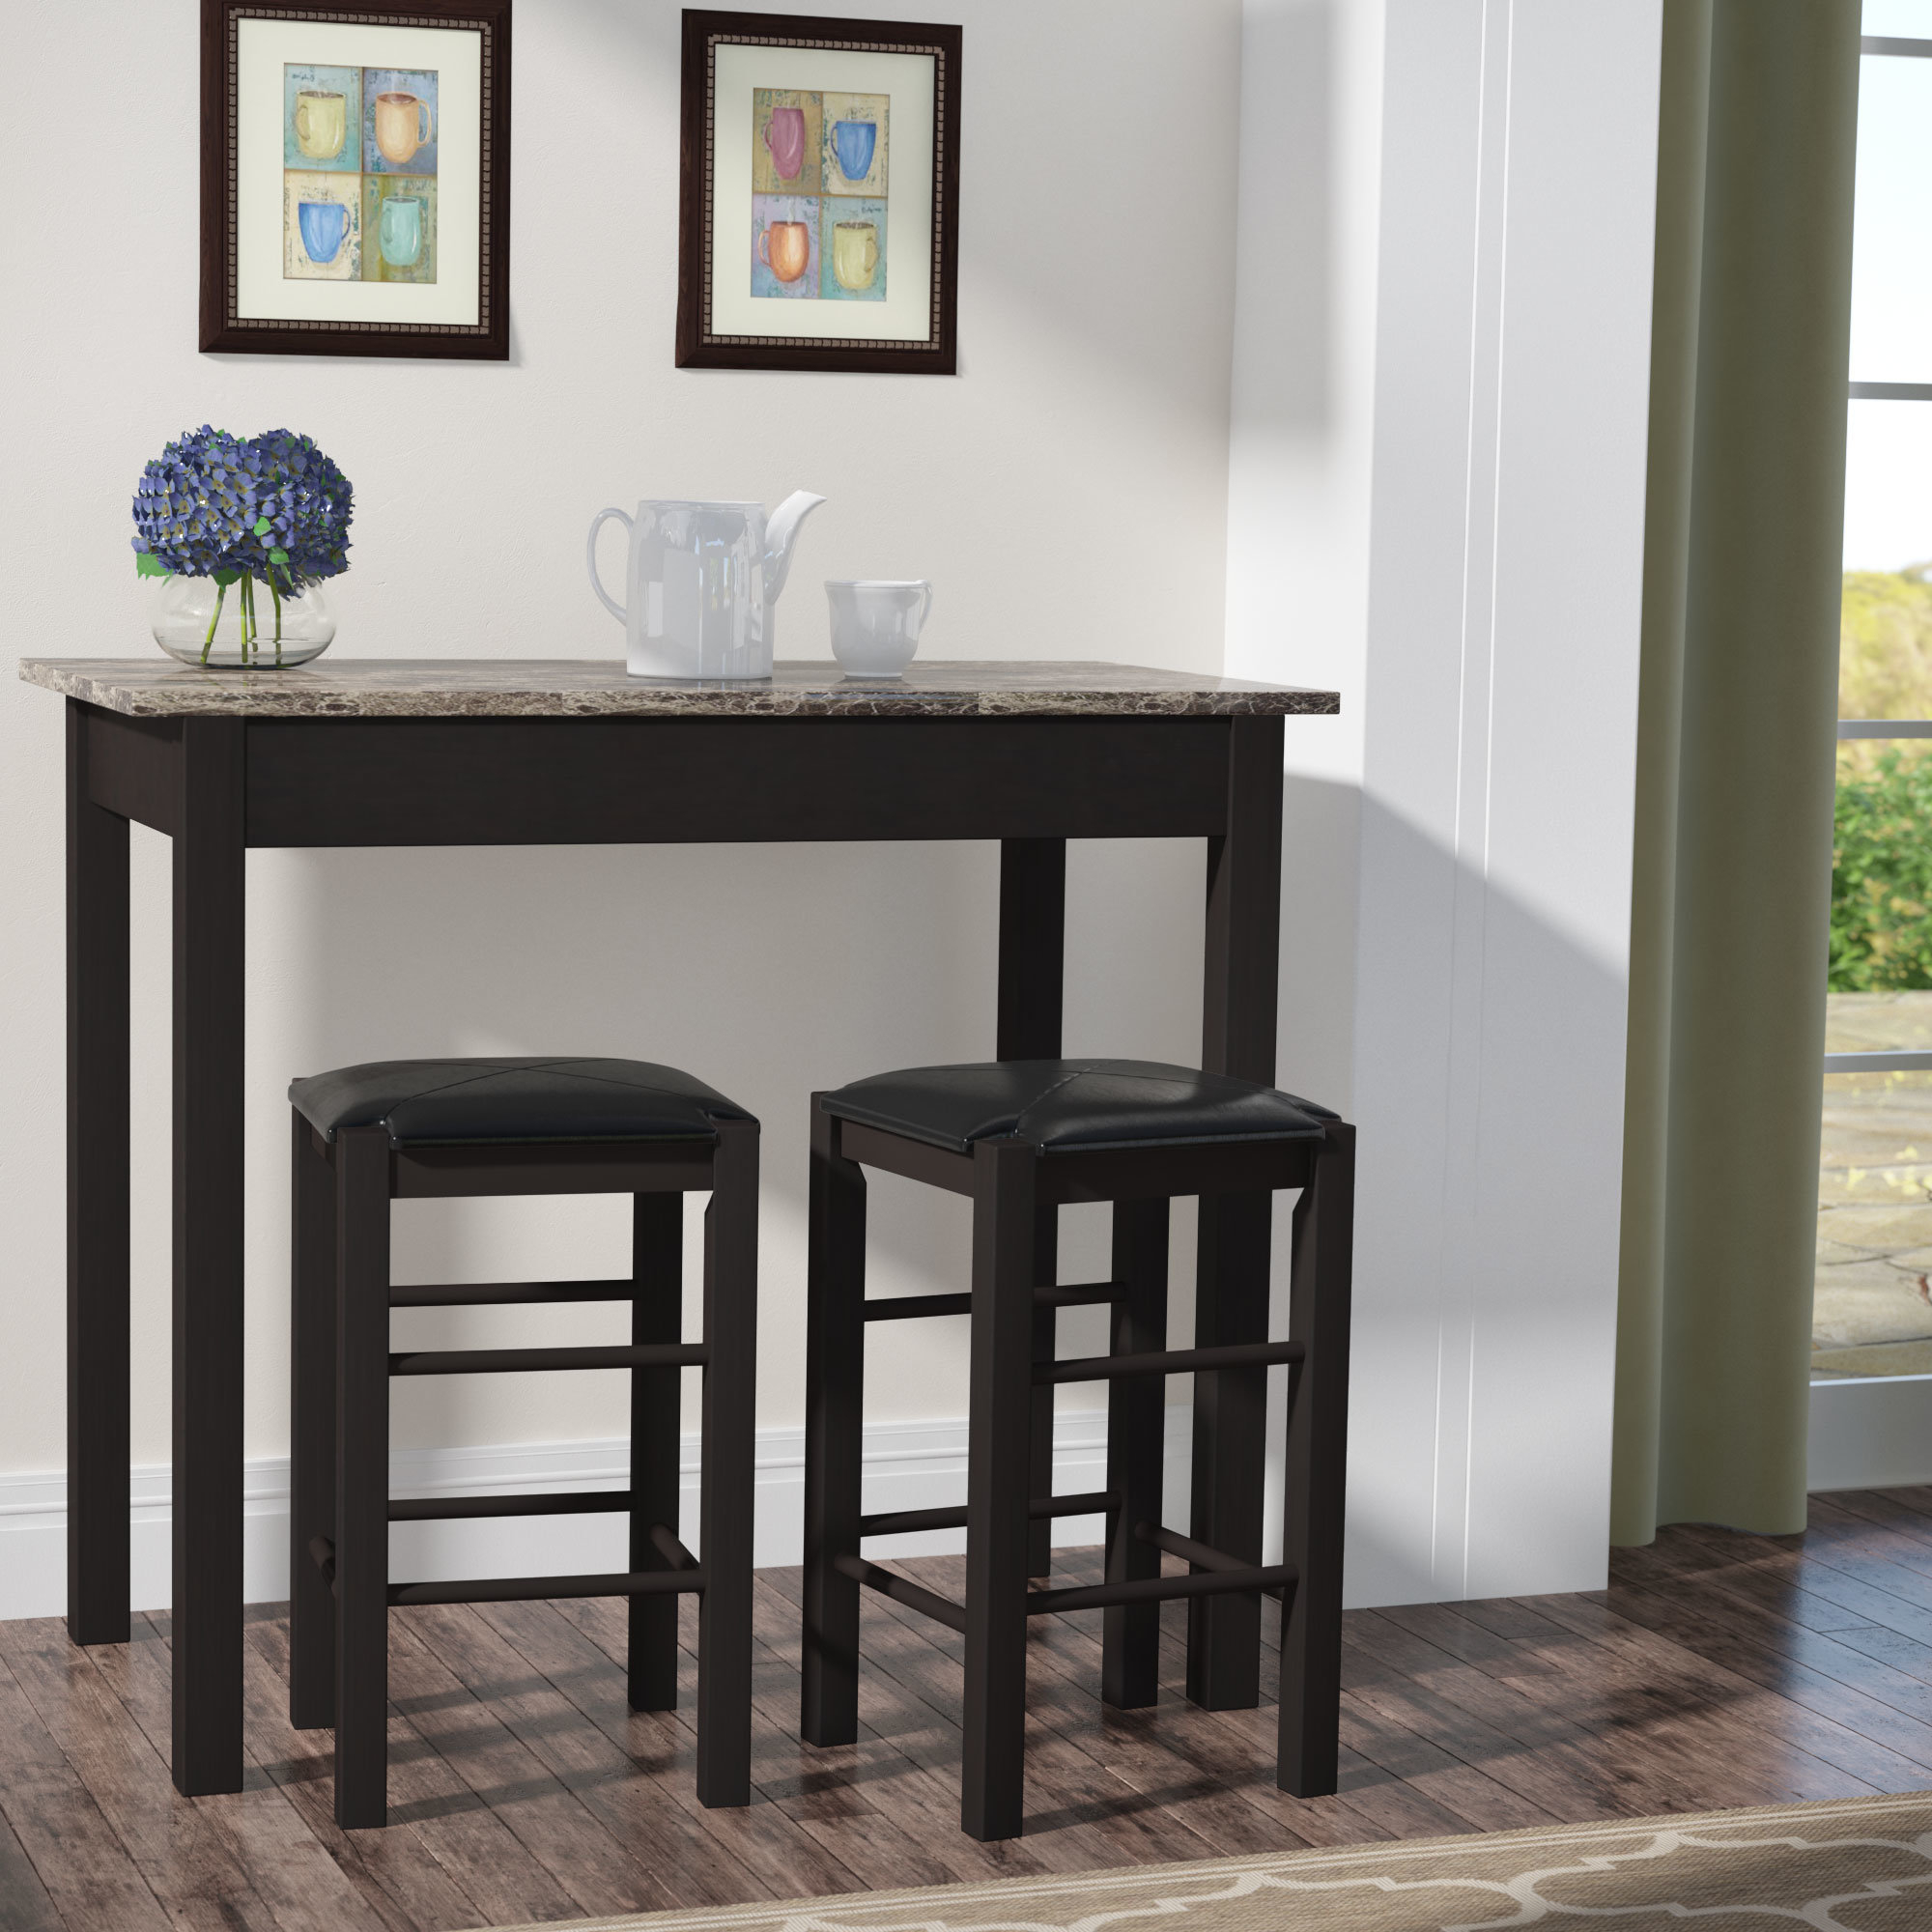 Sheetz 3 Piece Counter Height Dining Set In 2017 Askern 3 Piece Counter Height Dining Sets (Set Of 3) (View 3 of 20)